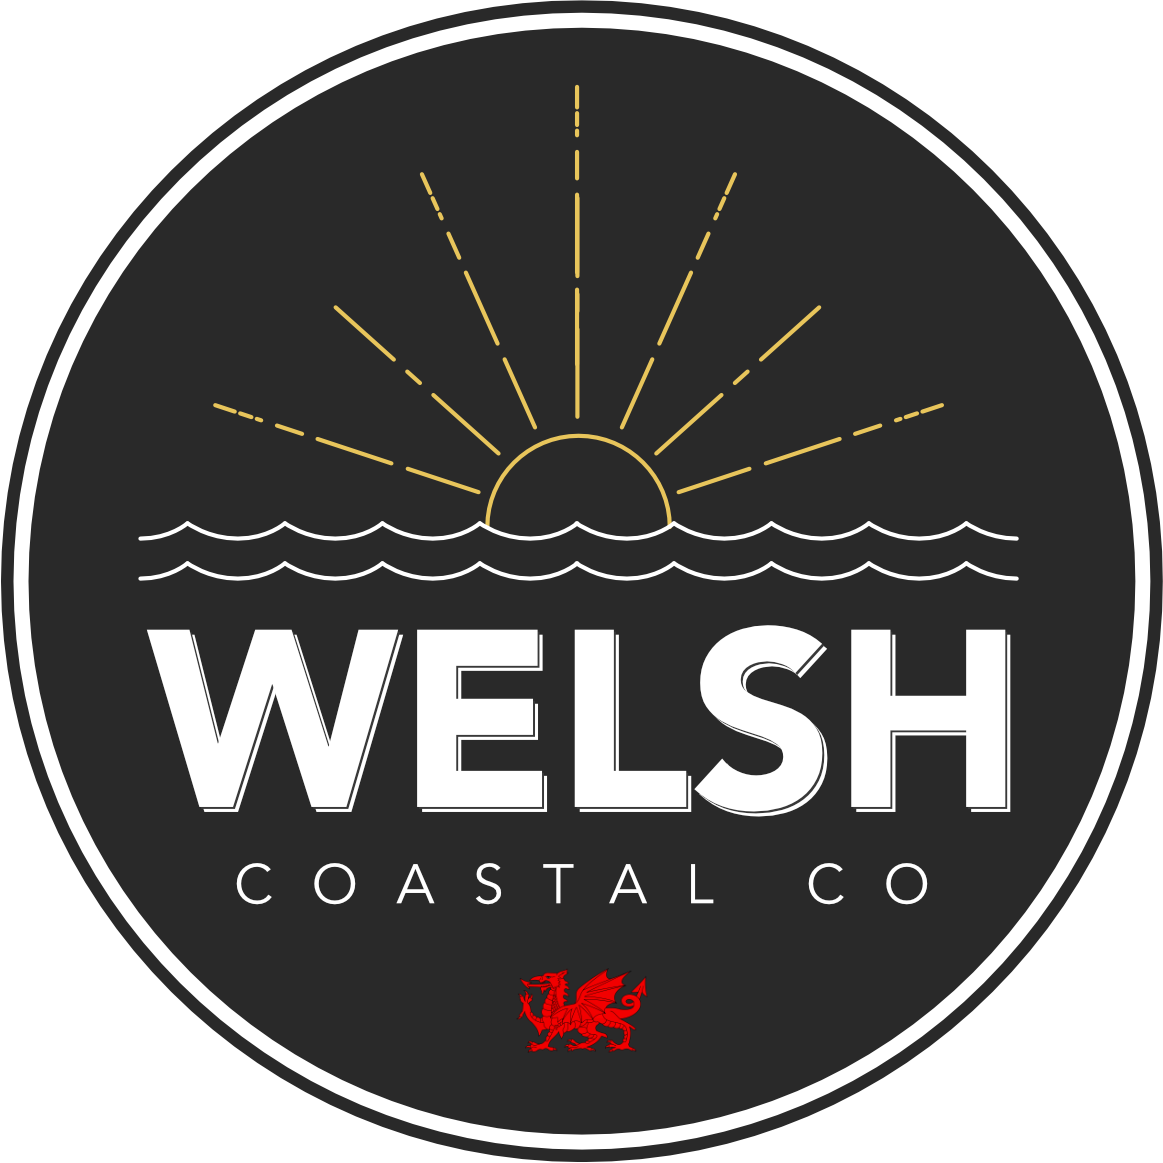 WelshCoastal Co